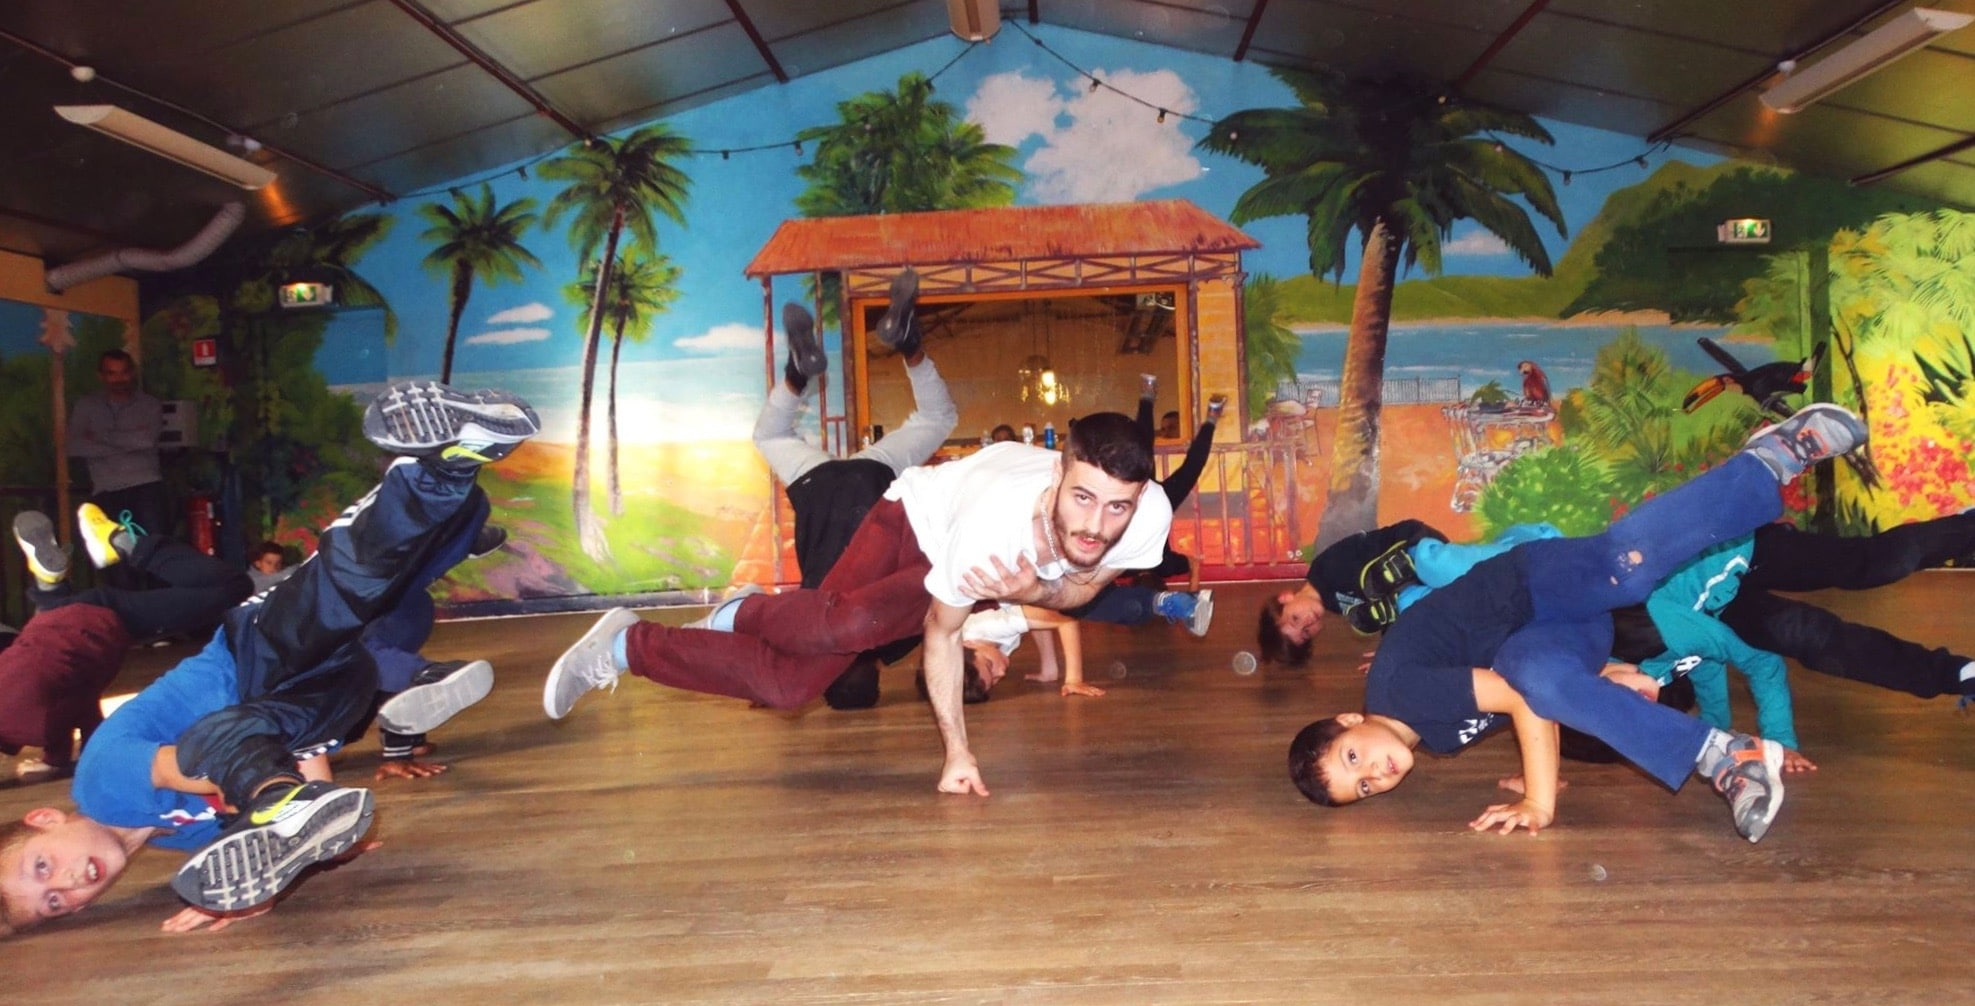 cours particulier dance to style - Le Breakdance aux JO 2024